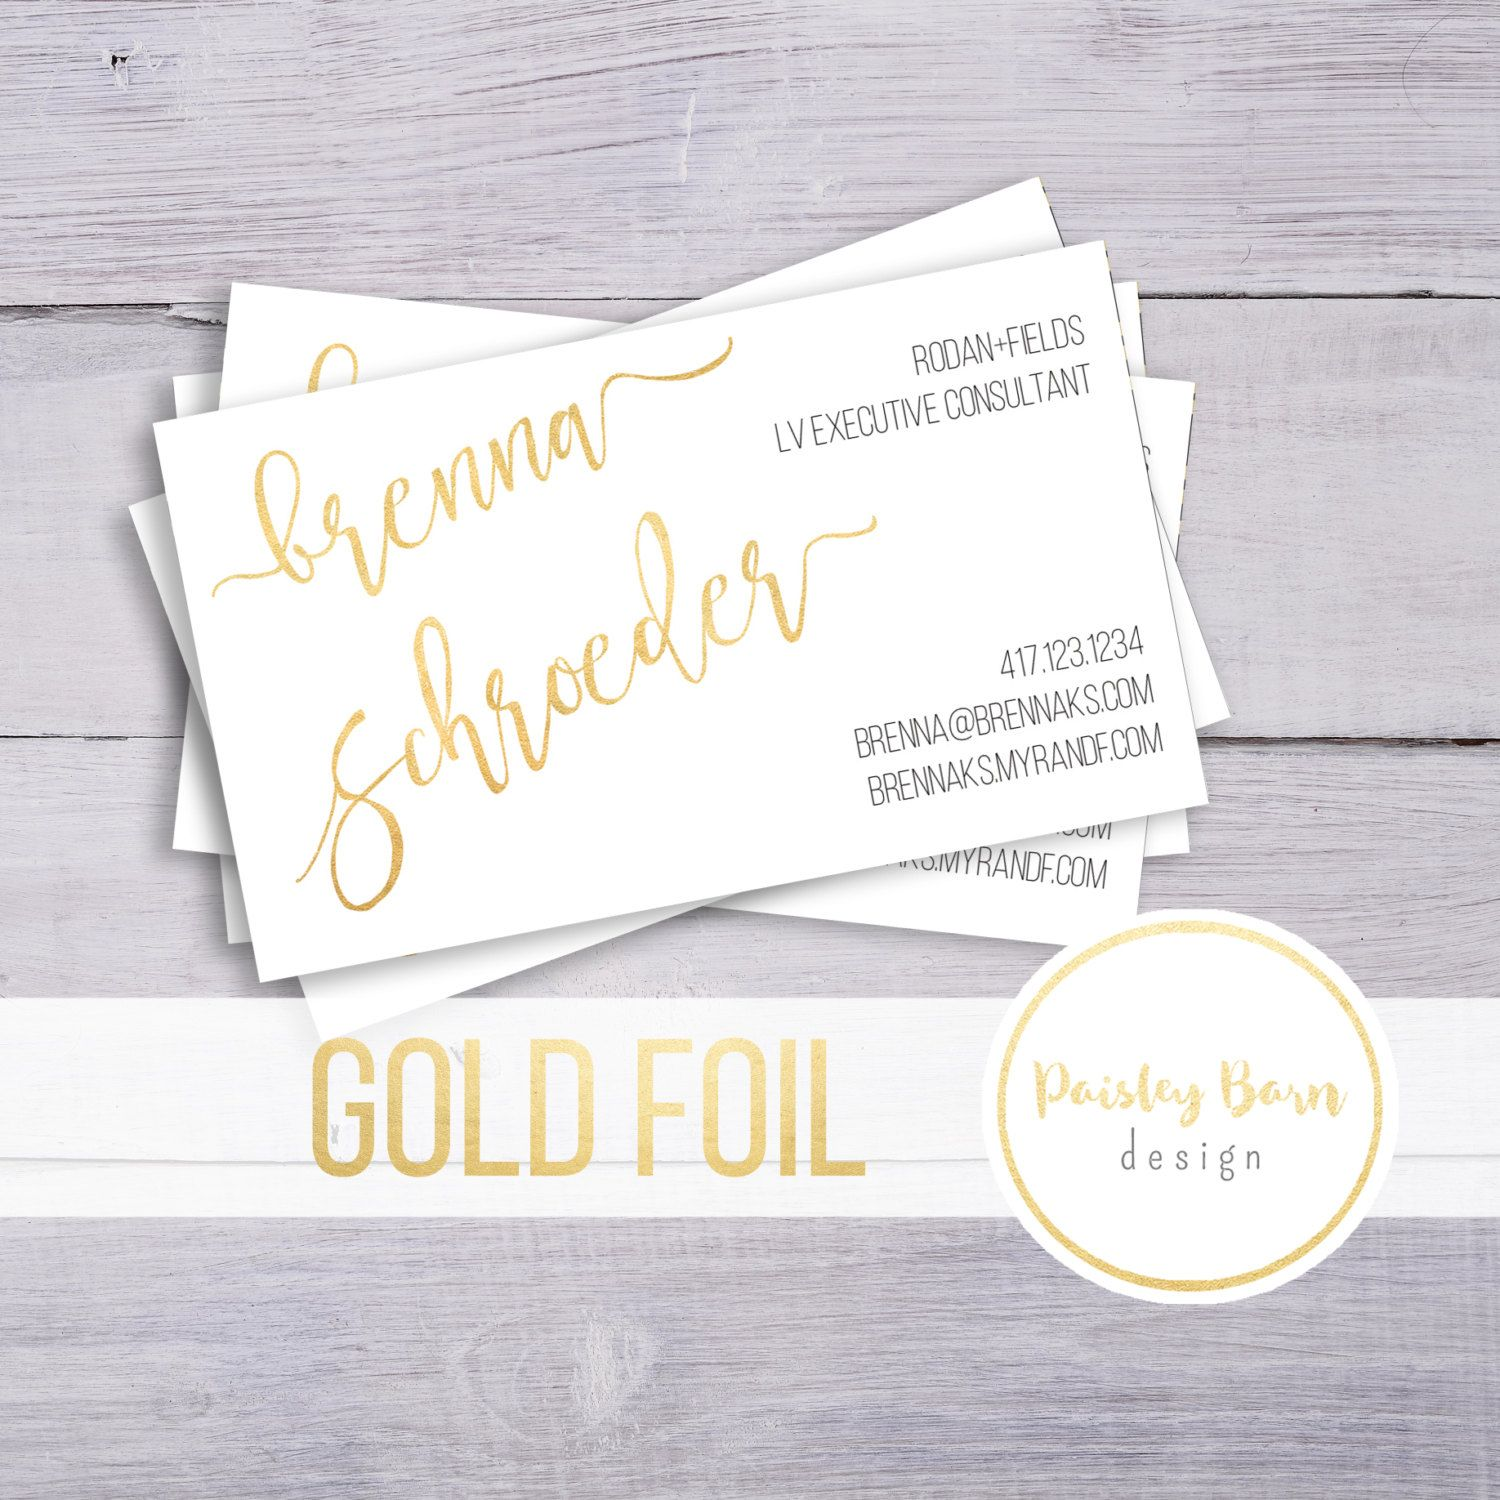 BUSINESS CARDS Gold Foil | skincare, business, marketing, printed ...